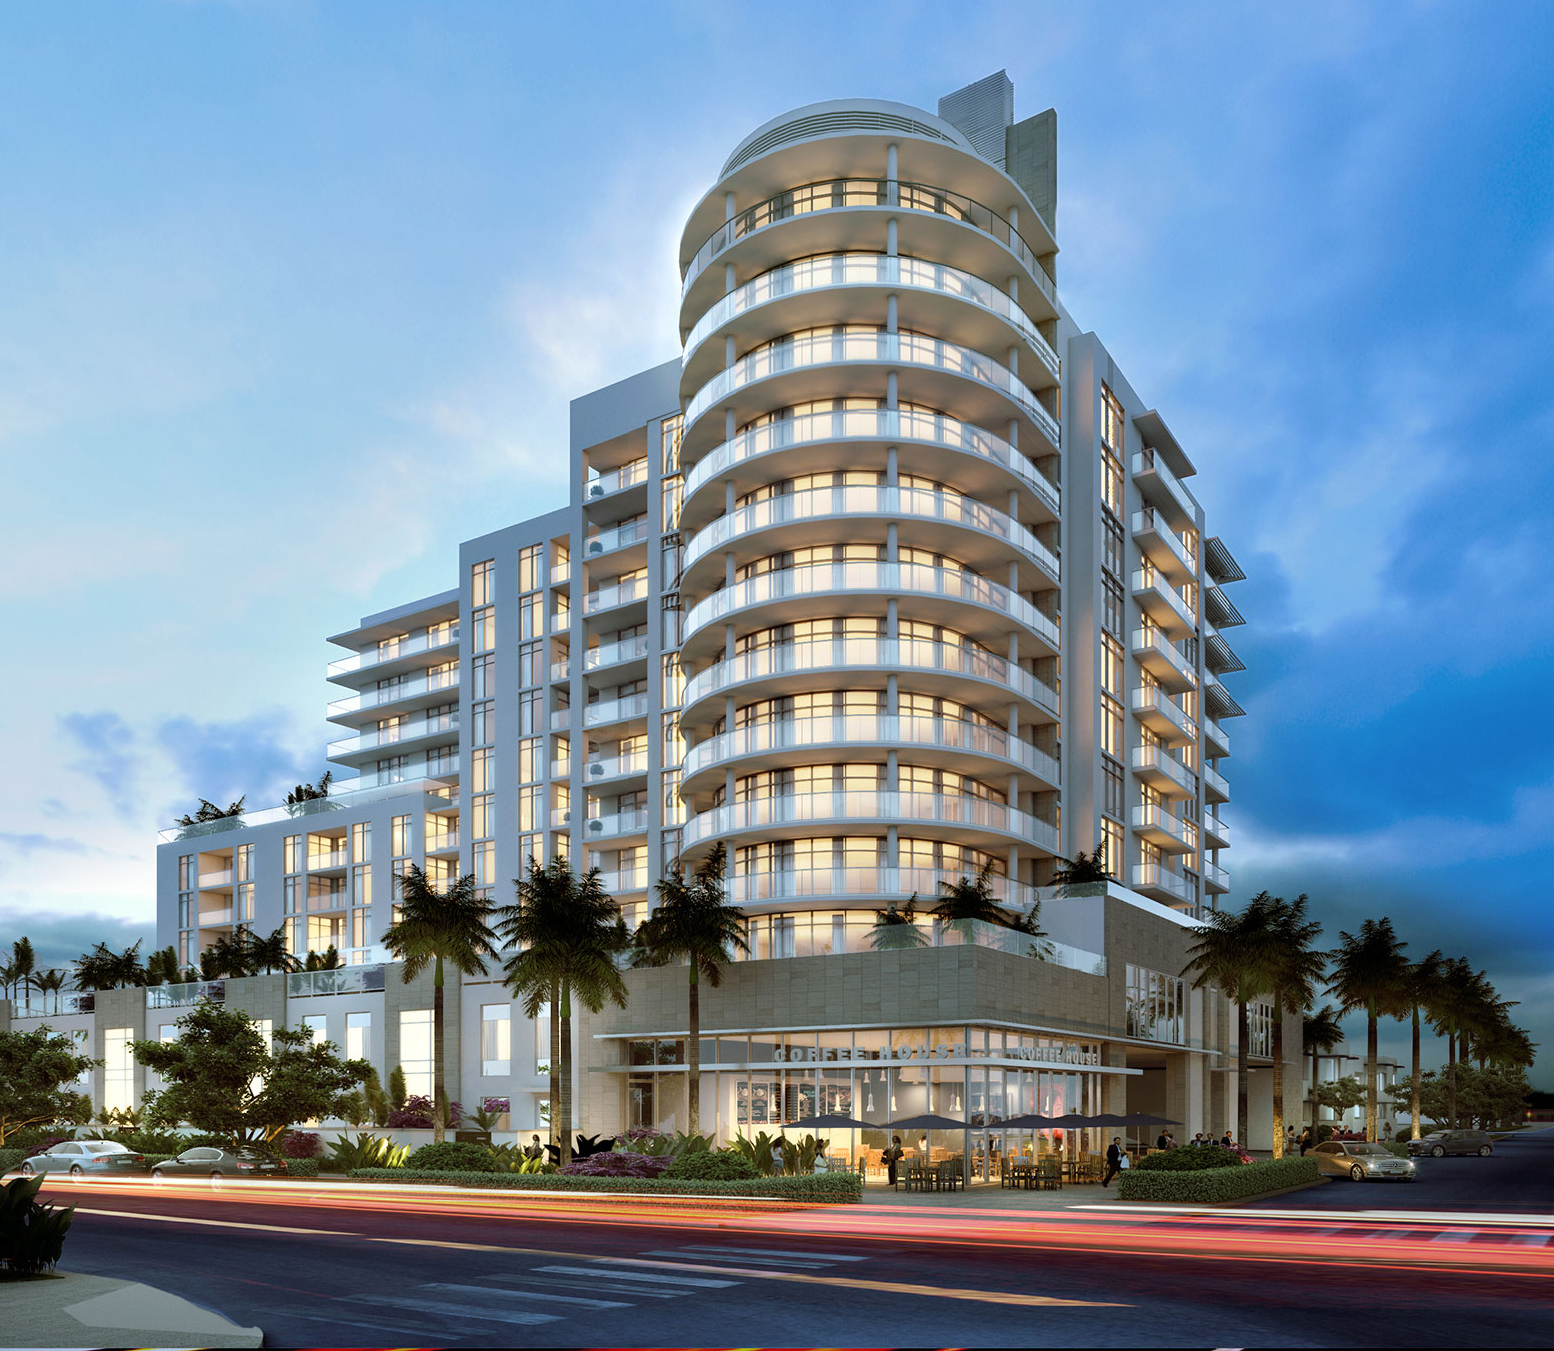 The Gale Residences on Fort Lauderdale Beach under construction